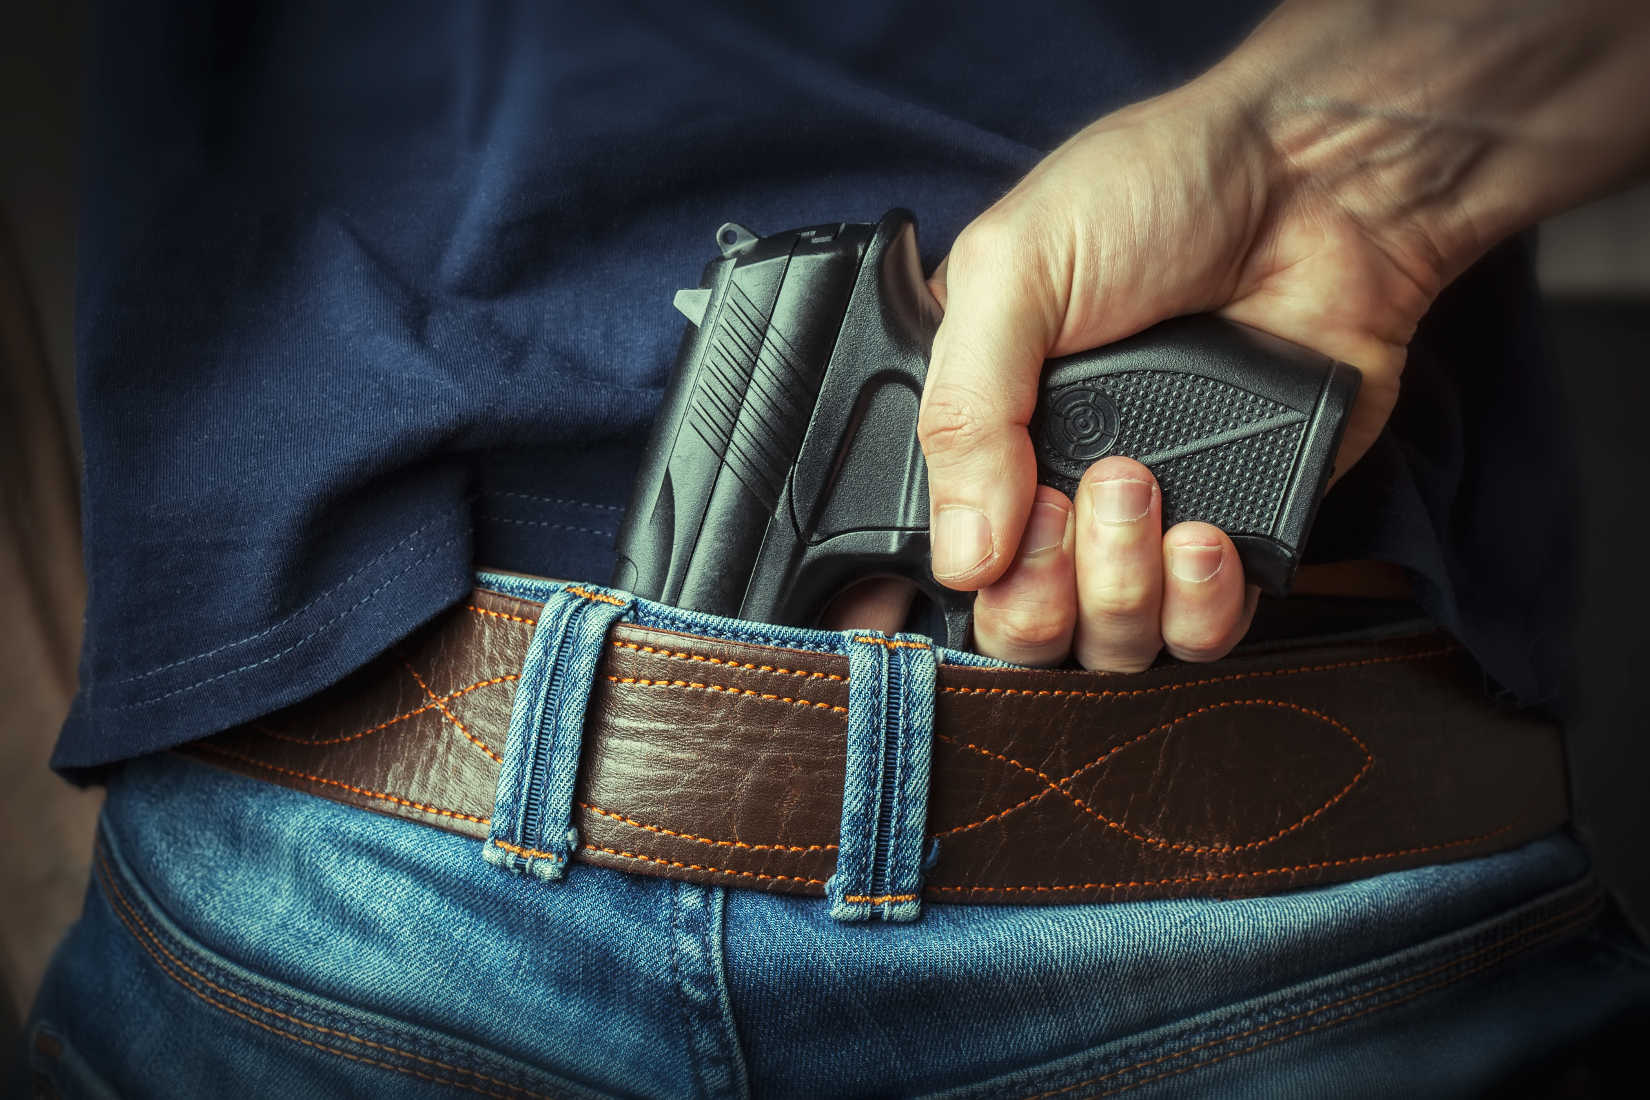 UPDATE: Armed Wal-Mart Hero ID'd as a Pastor